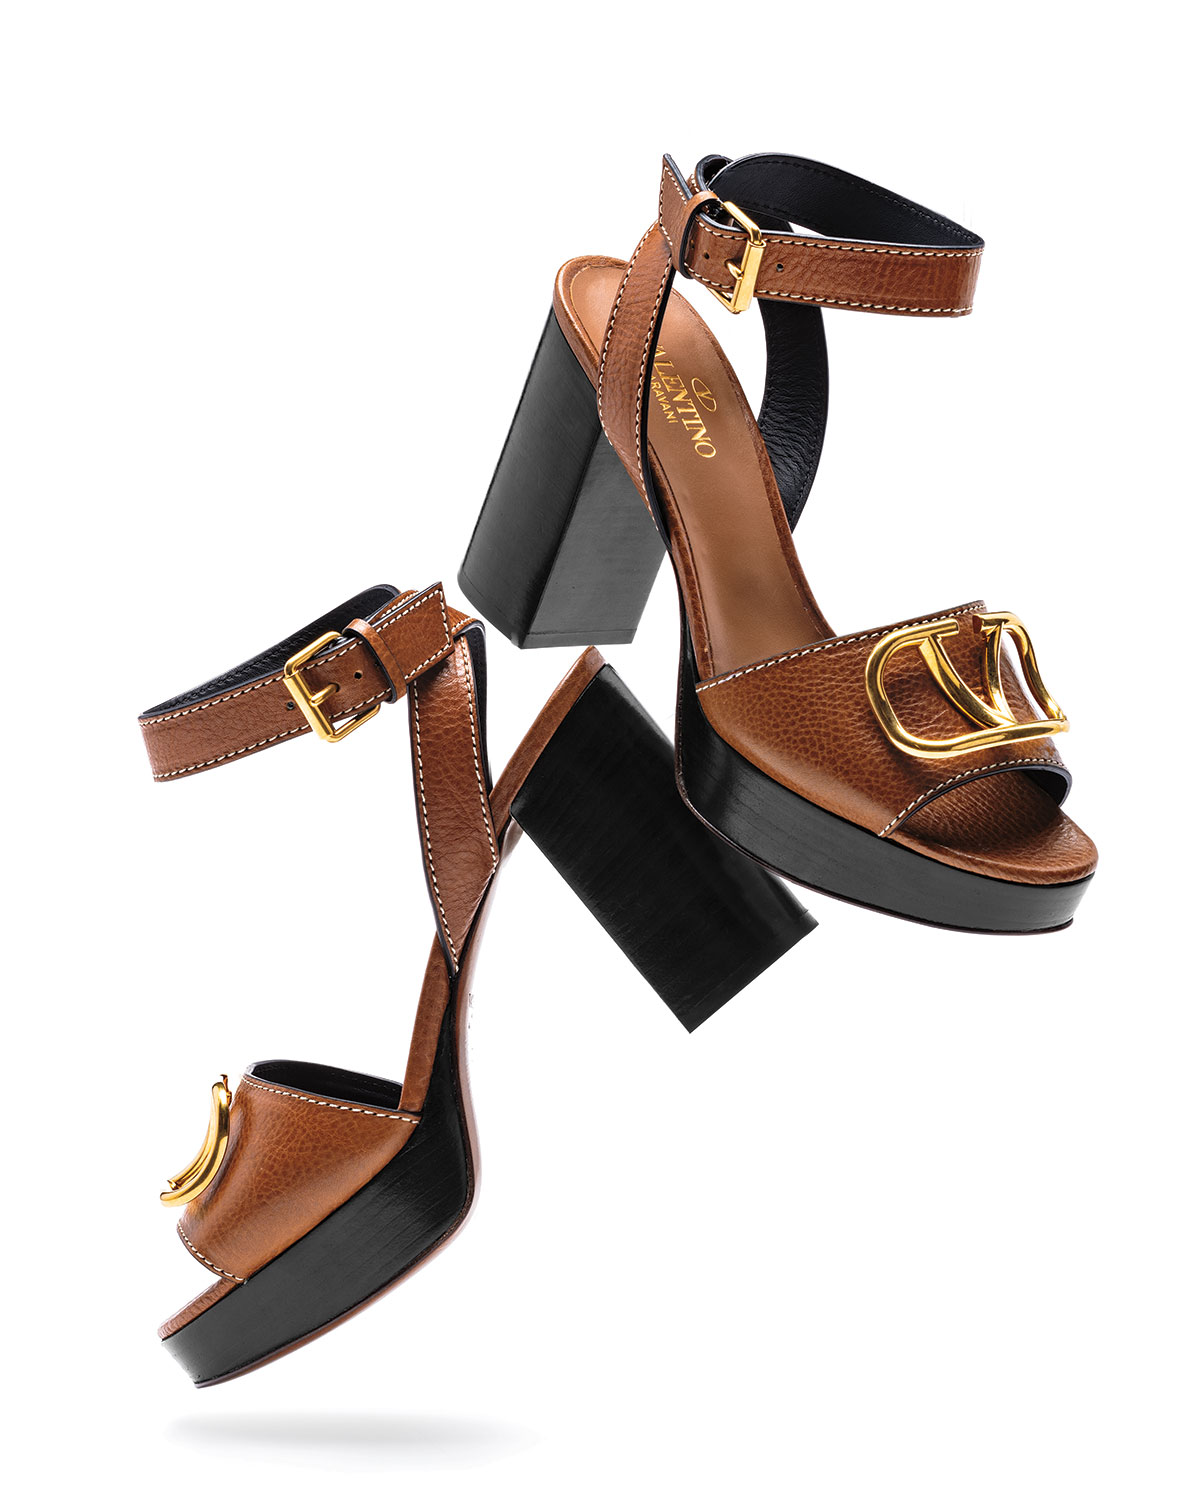 Vlogo Leather Platform Sandals by Valentino Garavani